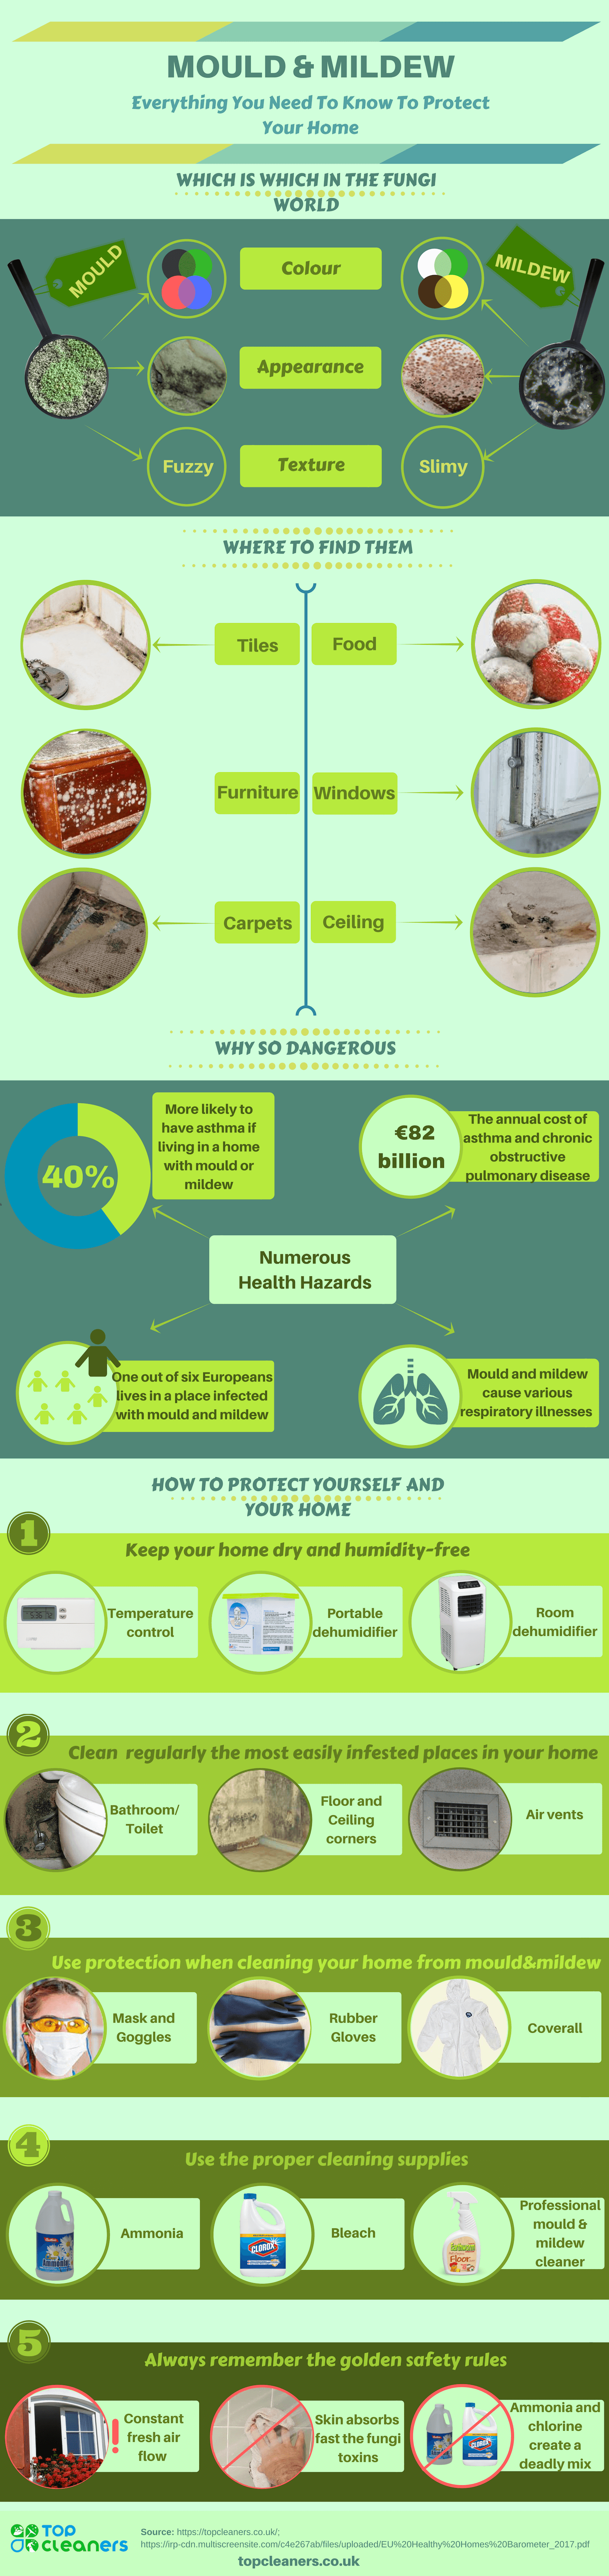 Infographic Mould&Mildew